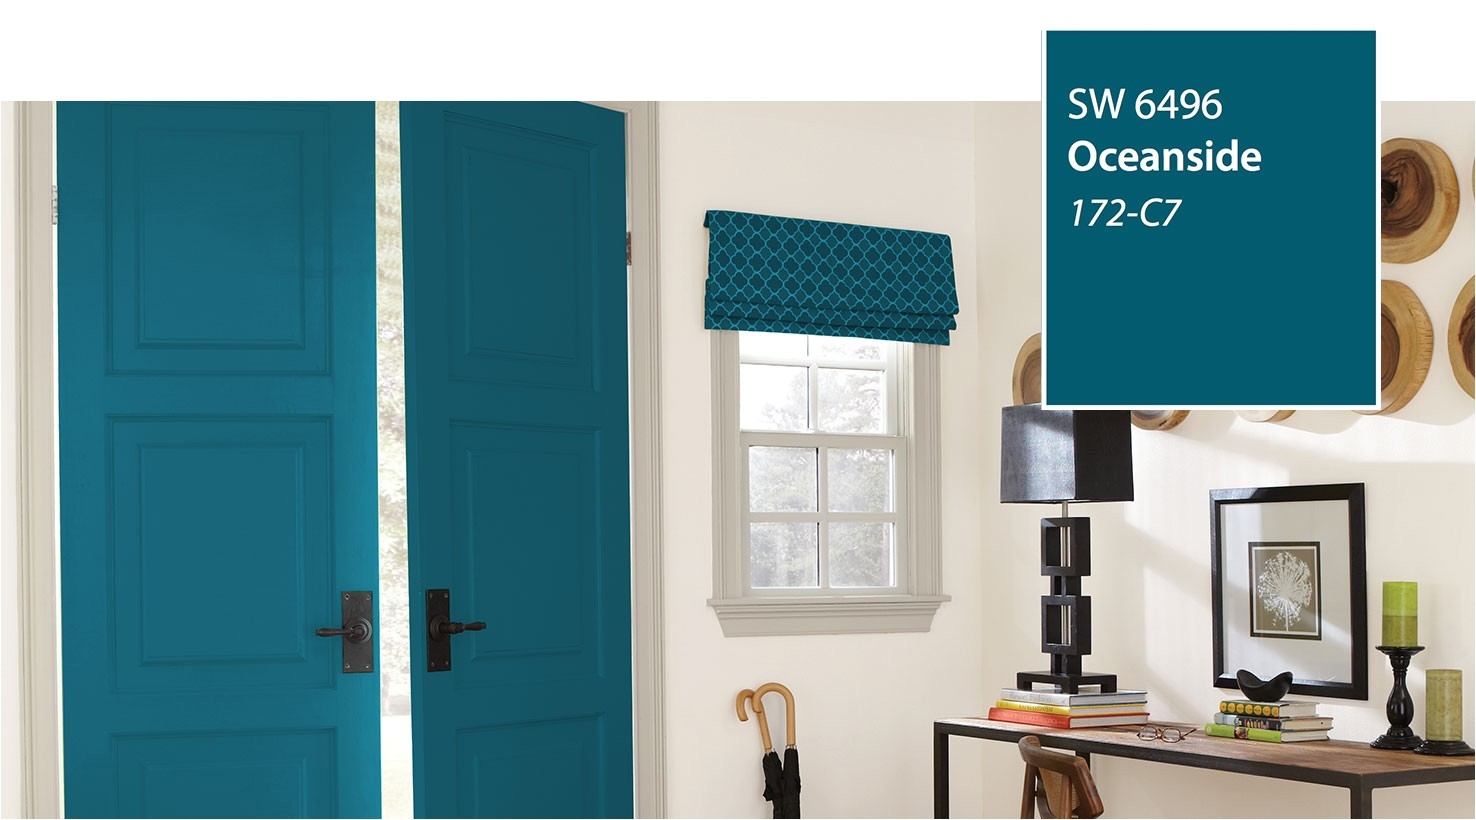 Sherwin Williams Worn Turquoise Paint Number Introducing the 2018 Color Of the Year Oceanside Sw 6496